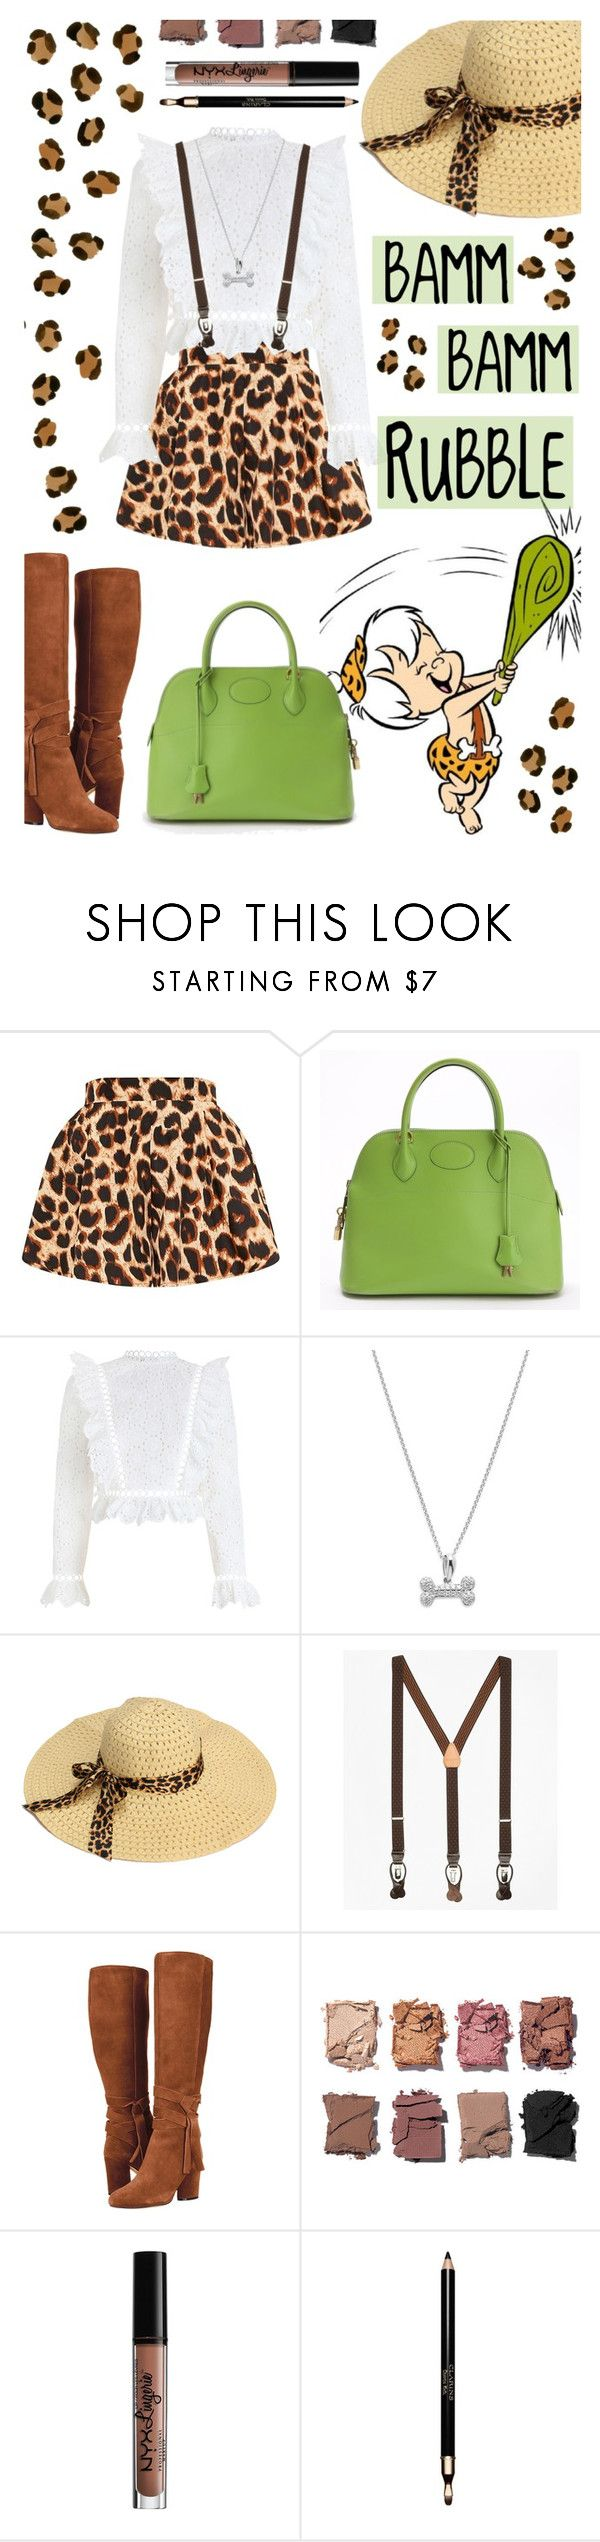 """BAMM-BAMM RUBBLE"" by gpatricia ❤ liked on Polyvore featuring Hermès, Zimmermann, Saks Fifth Avenue, Brooks Brothers, Illamasqua, Charlotte Russe and Clarins"